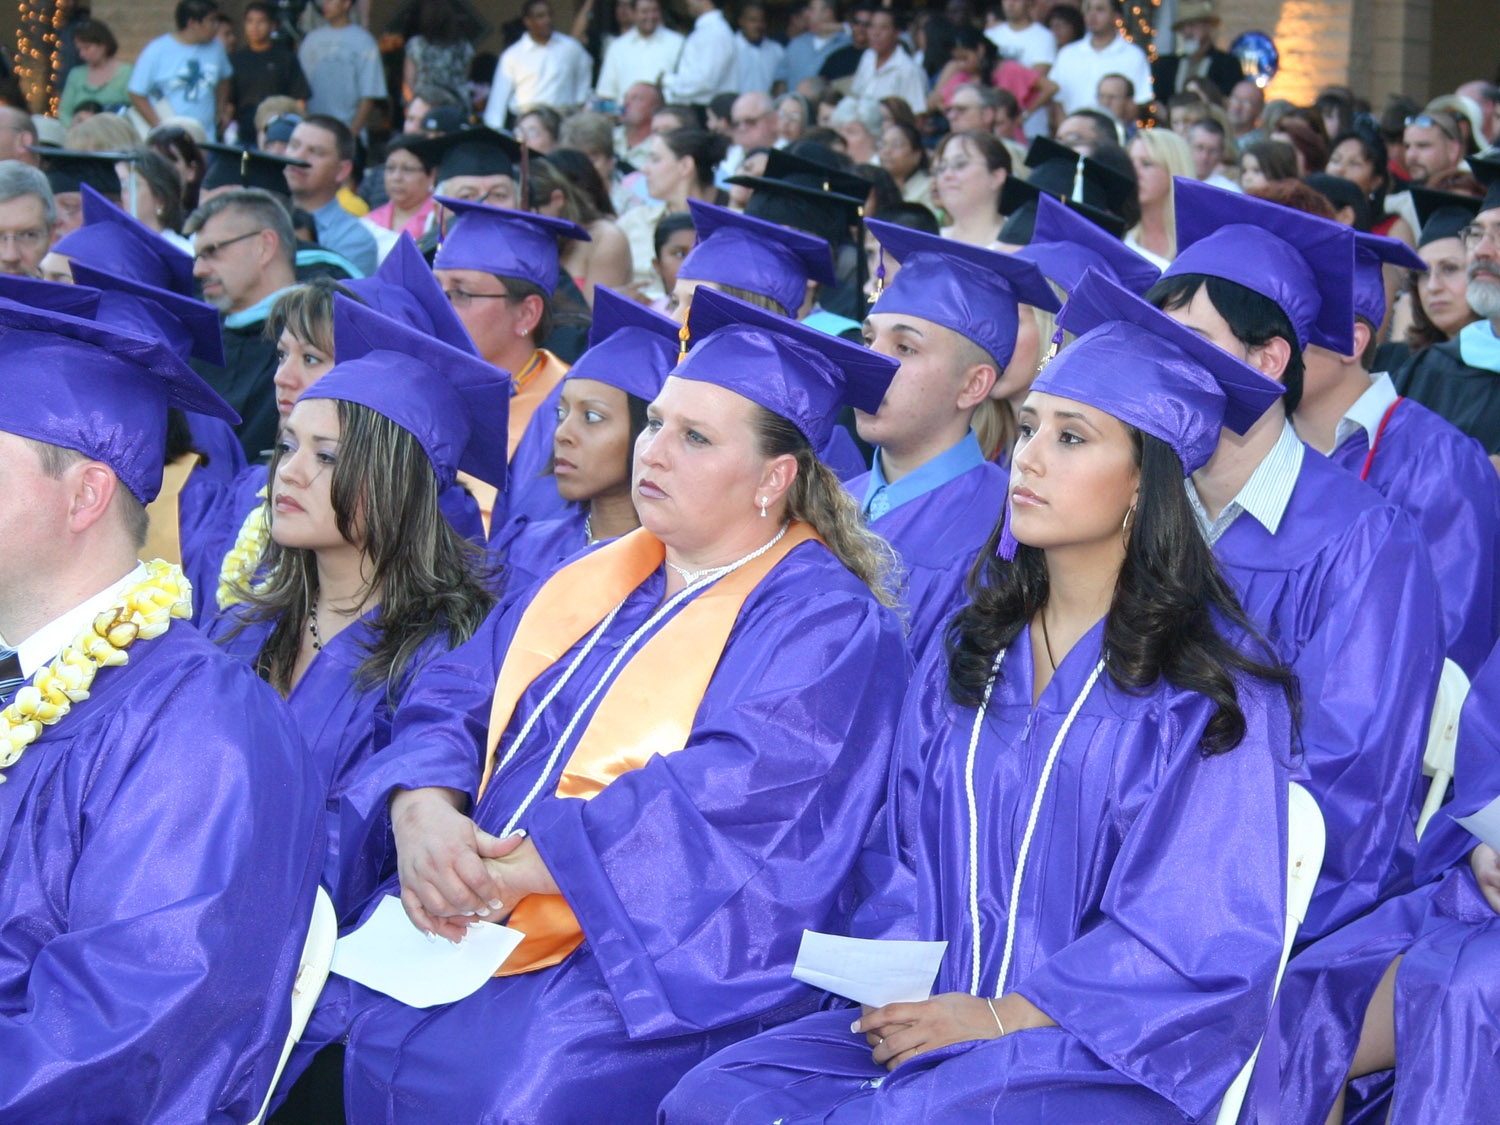 estrella mountain community college students Most college students receive financial aid, which reduces the amount the family actually pays  explore key estrella mountain community college information .